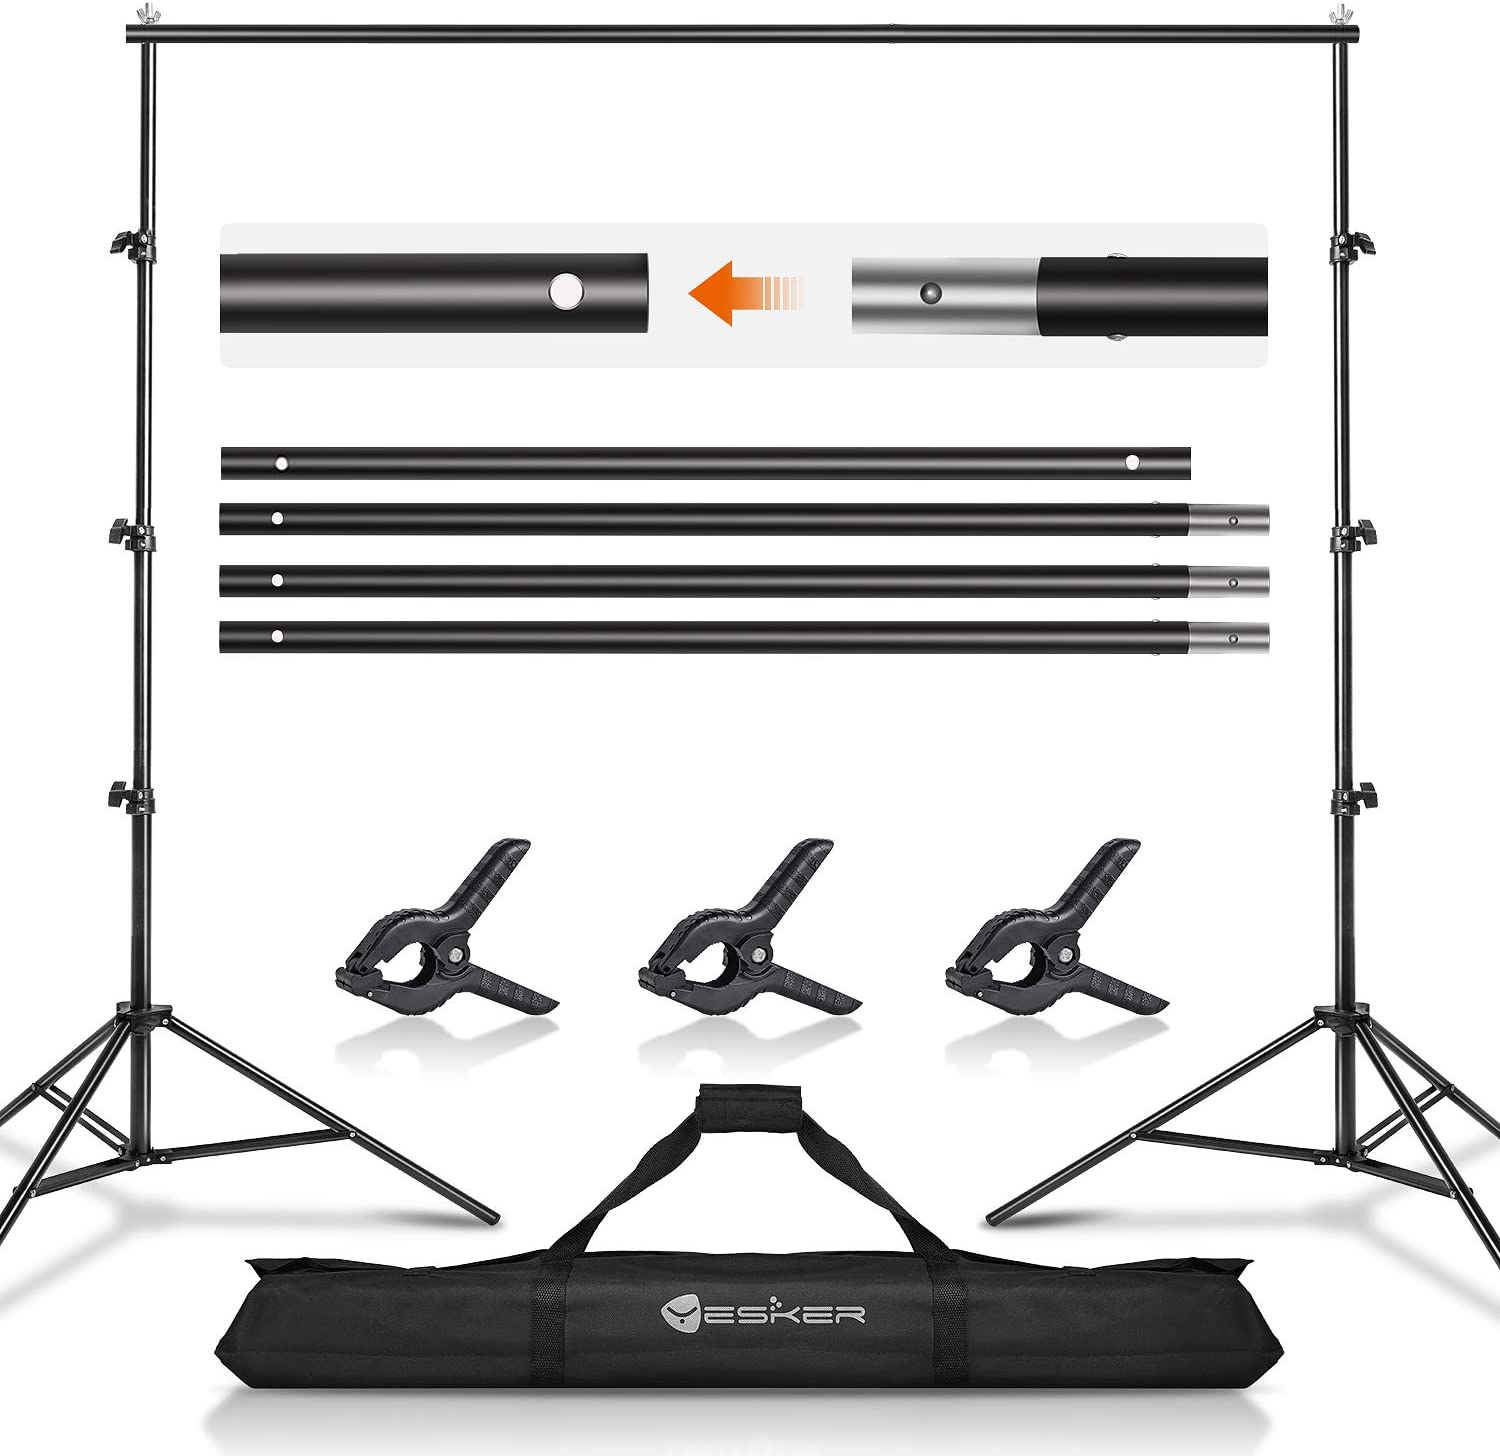 Yesker Background Stand Backdrop Support System Kit 8.5X 10ft Photo Video Studio Adjustable for Photoshoot Photography Parties Wedding with Carrying Bag